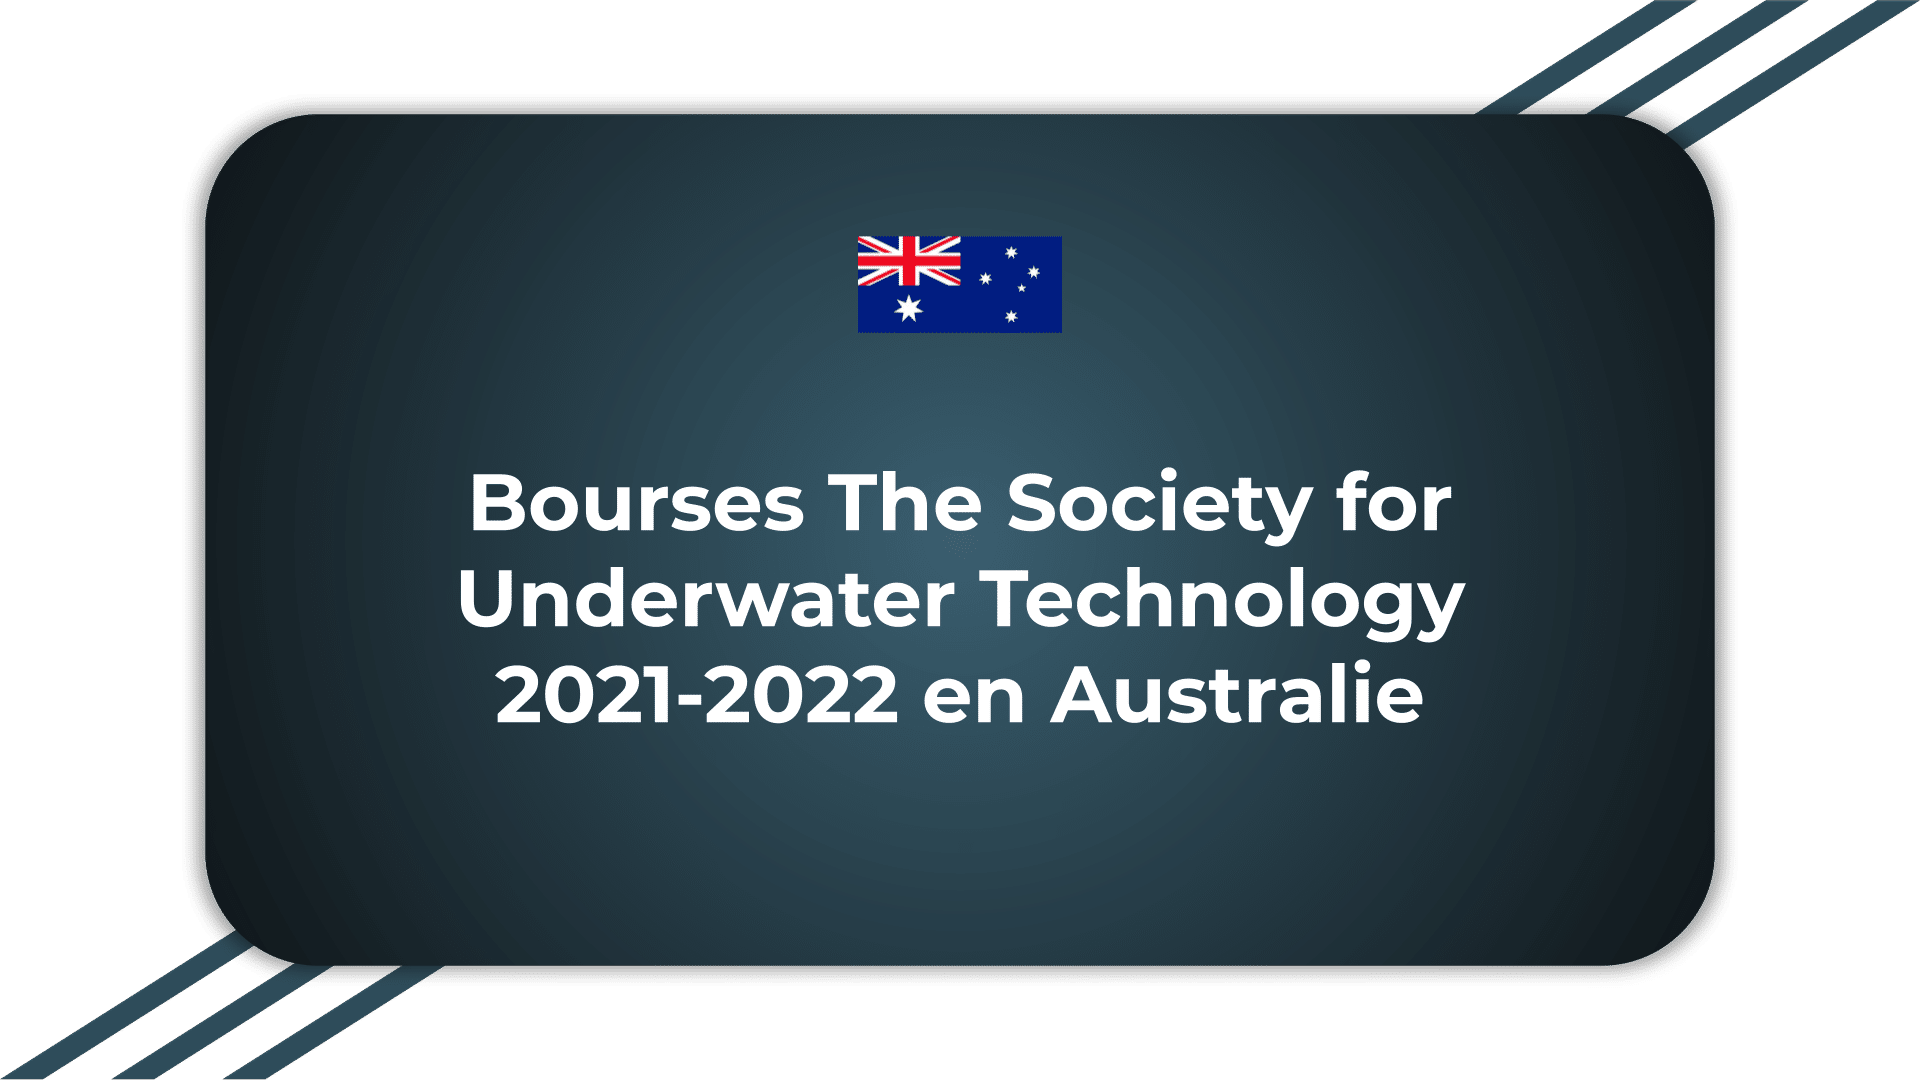 Bourses The Society for Underwater Technology